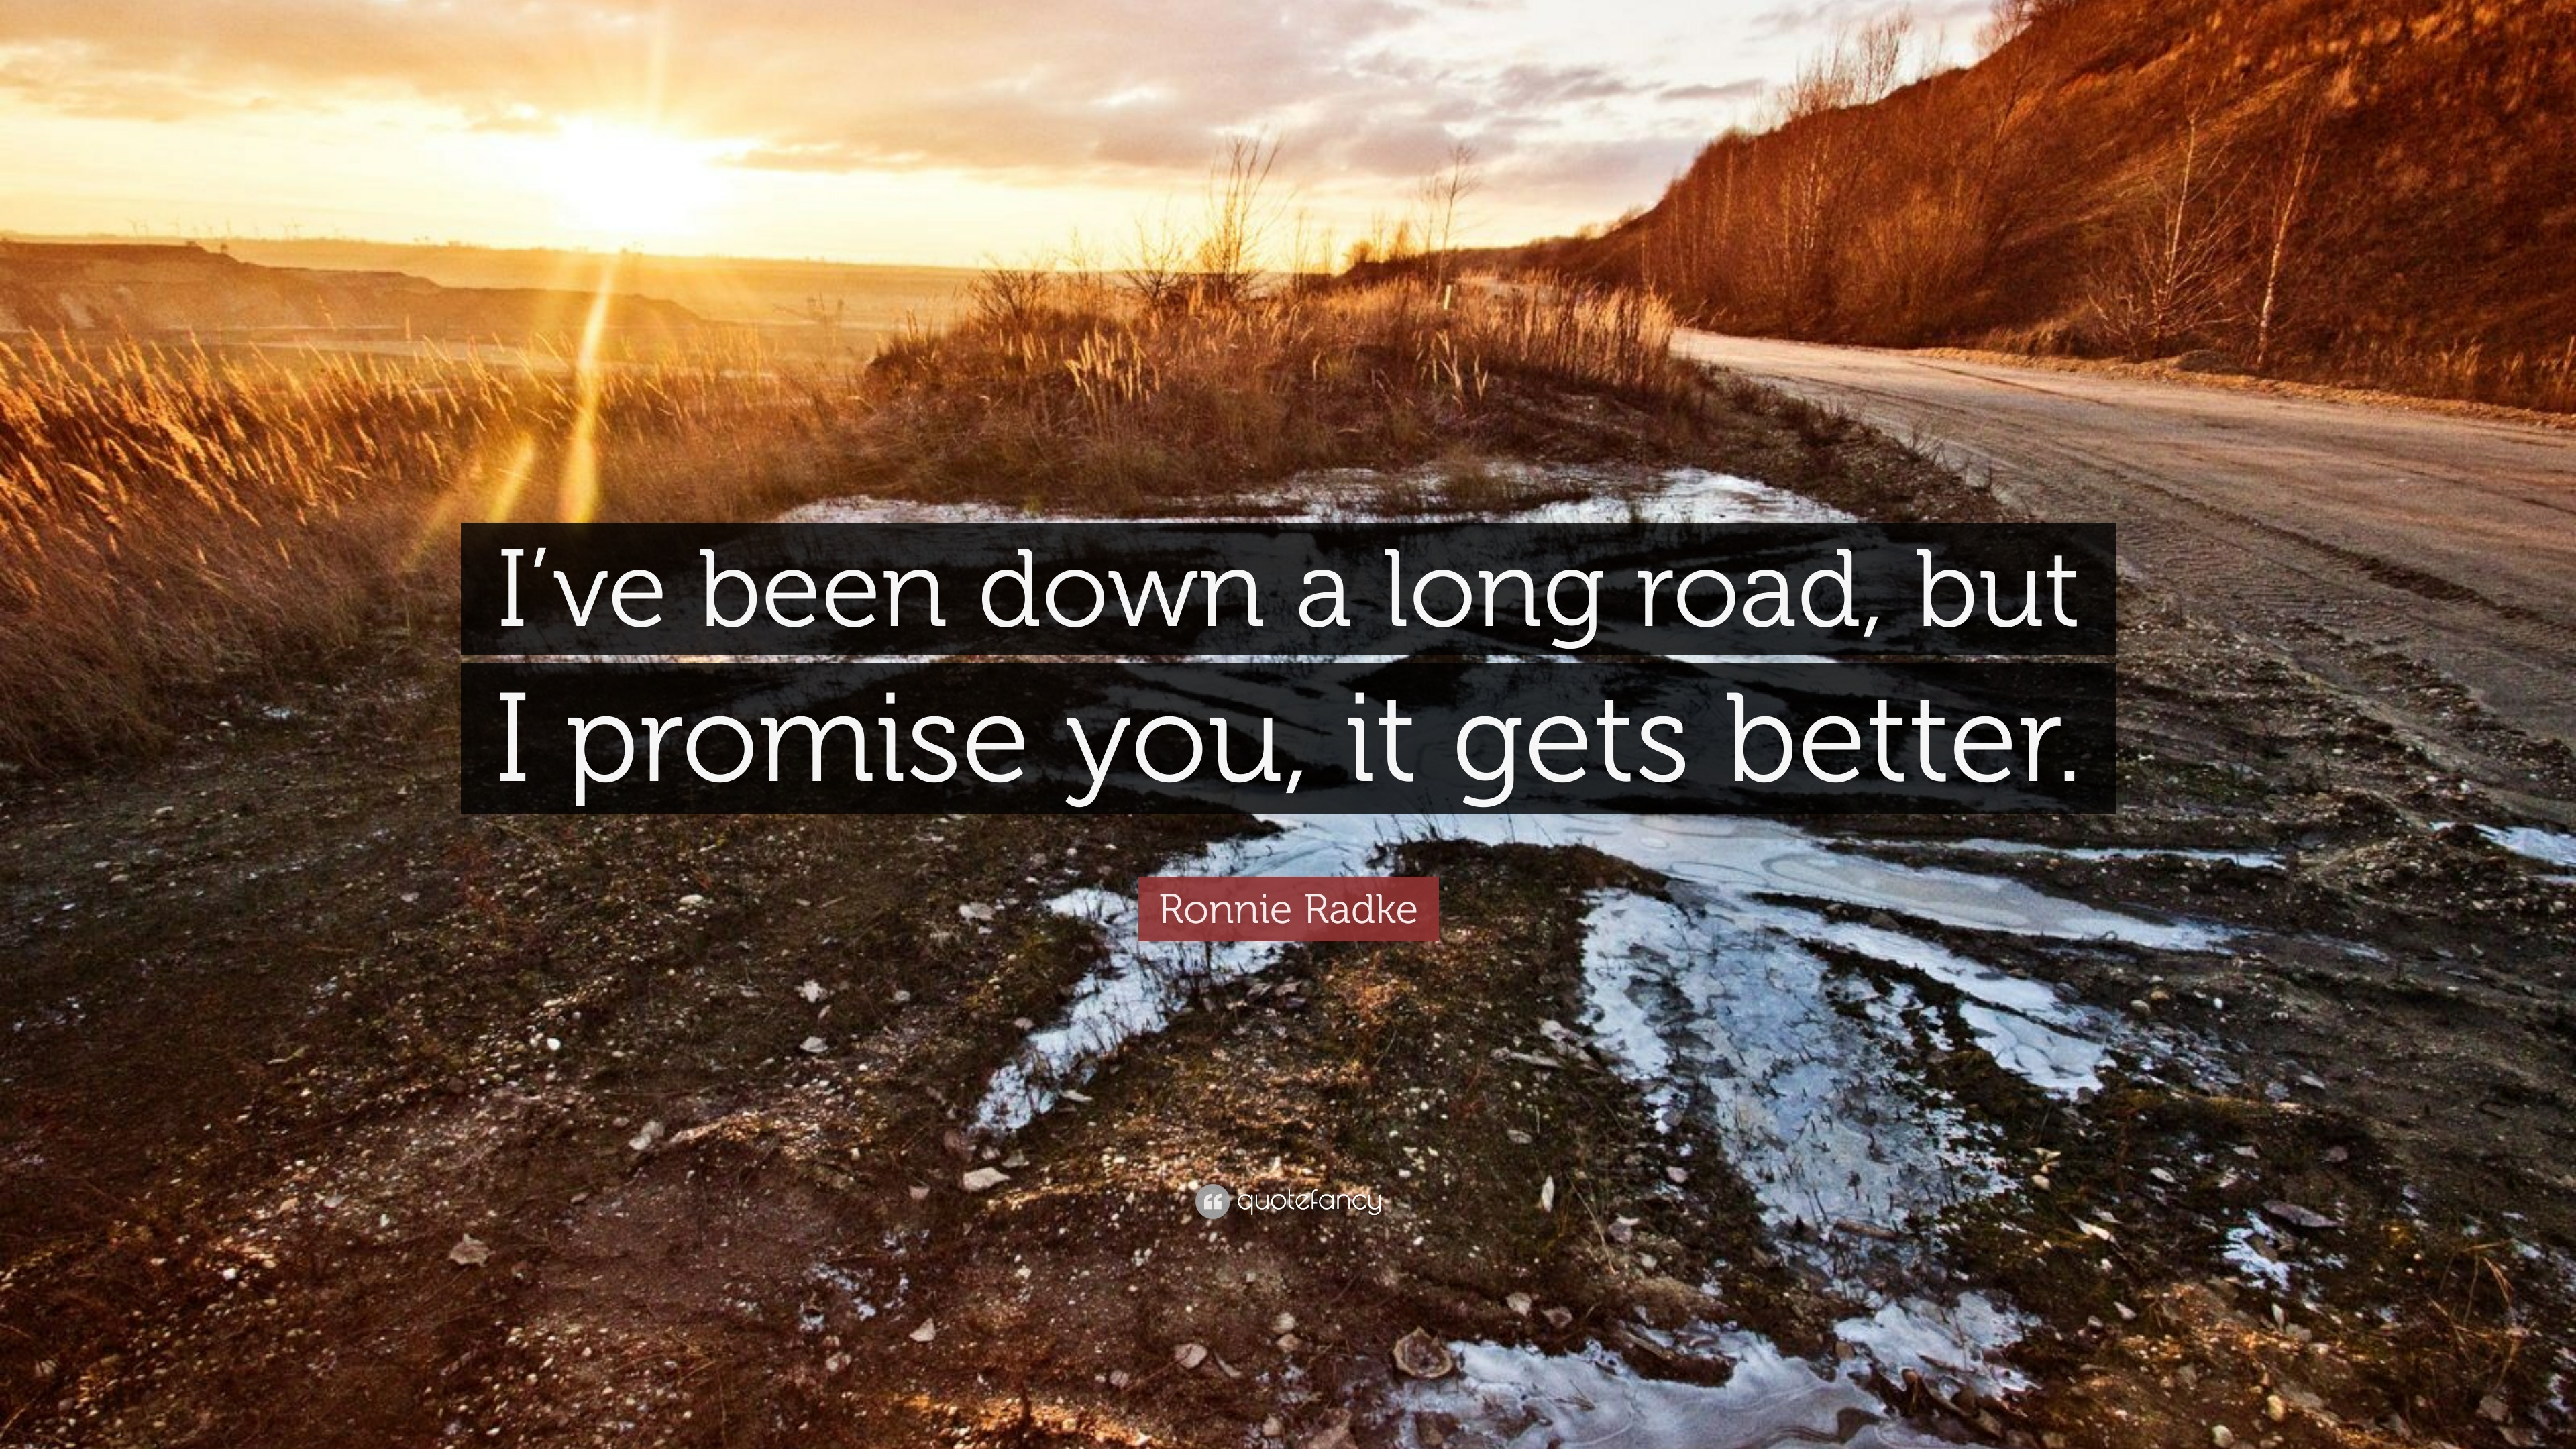 Day After Its Long Road To Better >> Ronnie Radke Quote I Ve Been Down A Long Road But I Promise You